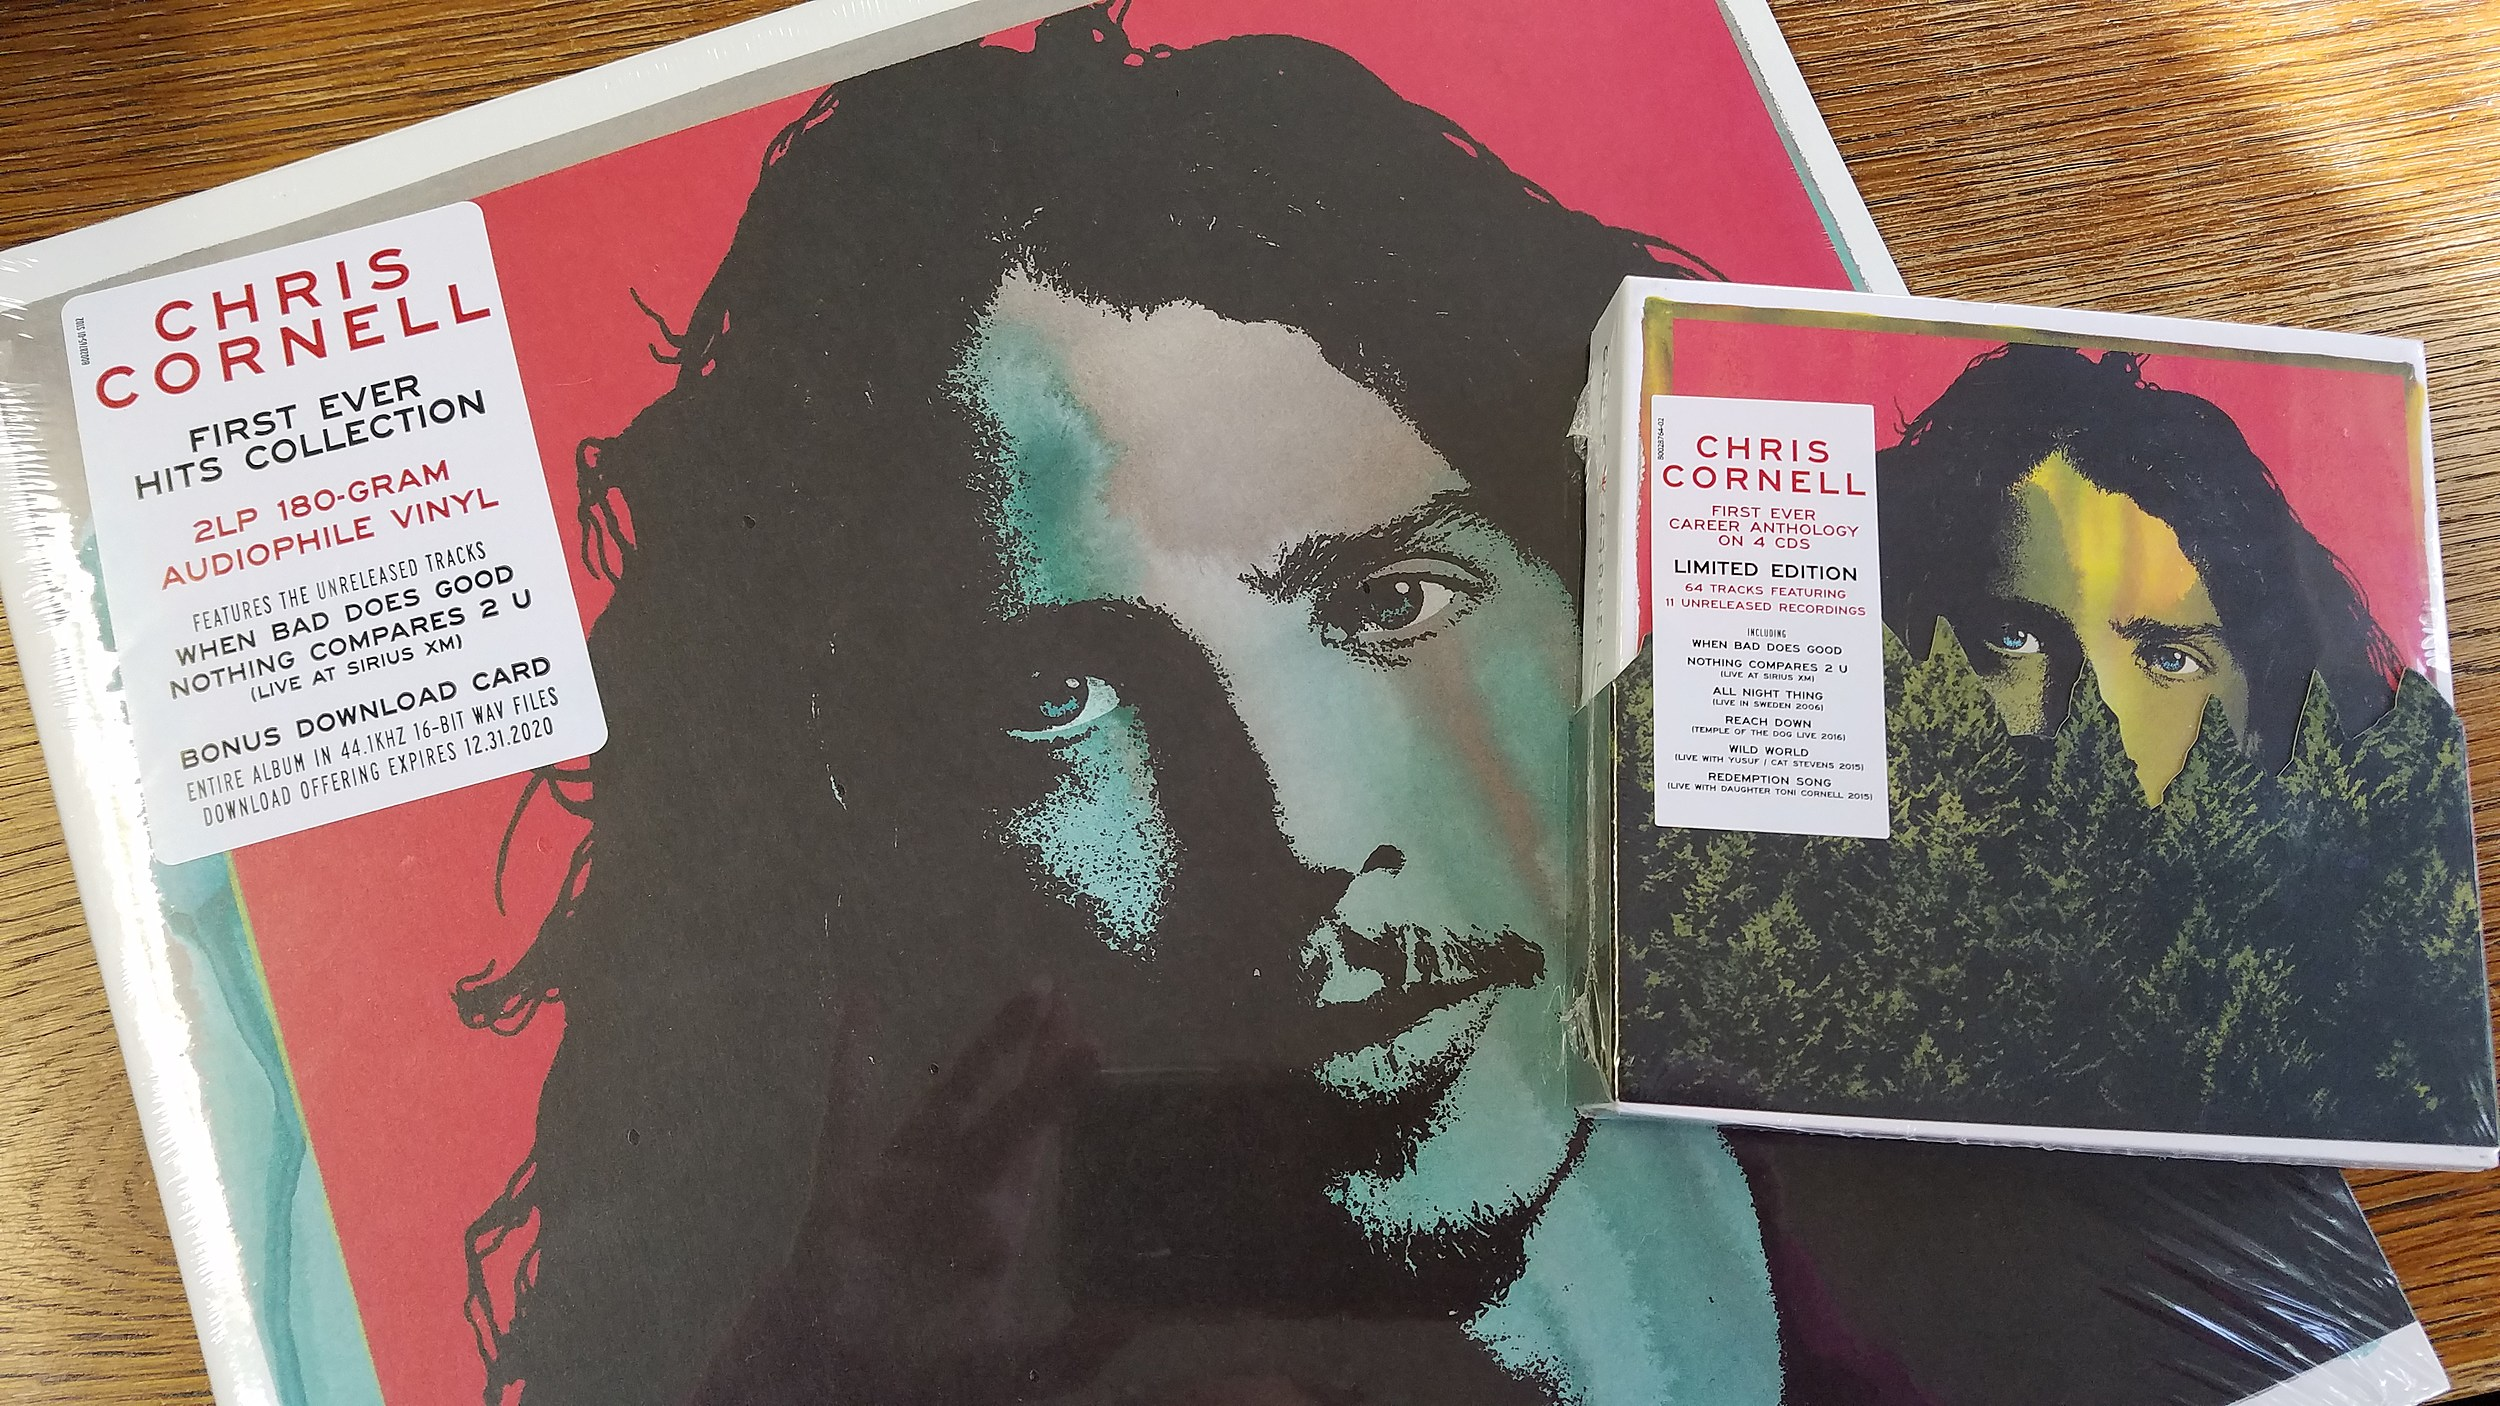 Get the mooseradio app for the ultimate chris cornell package.